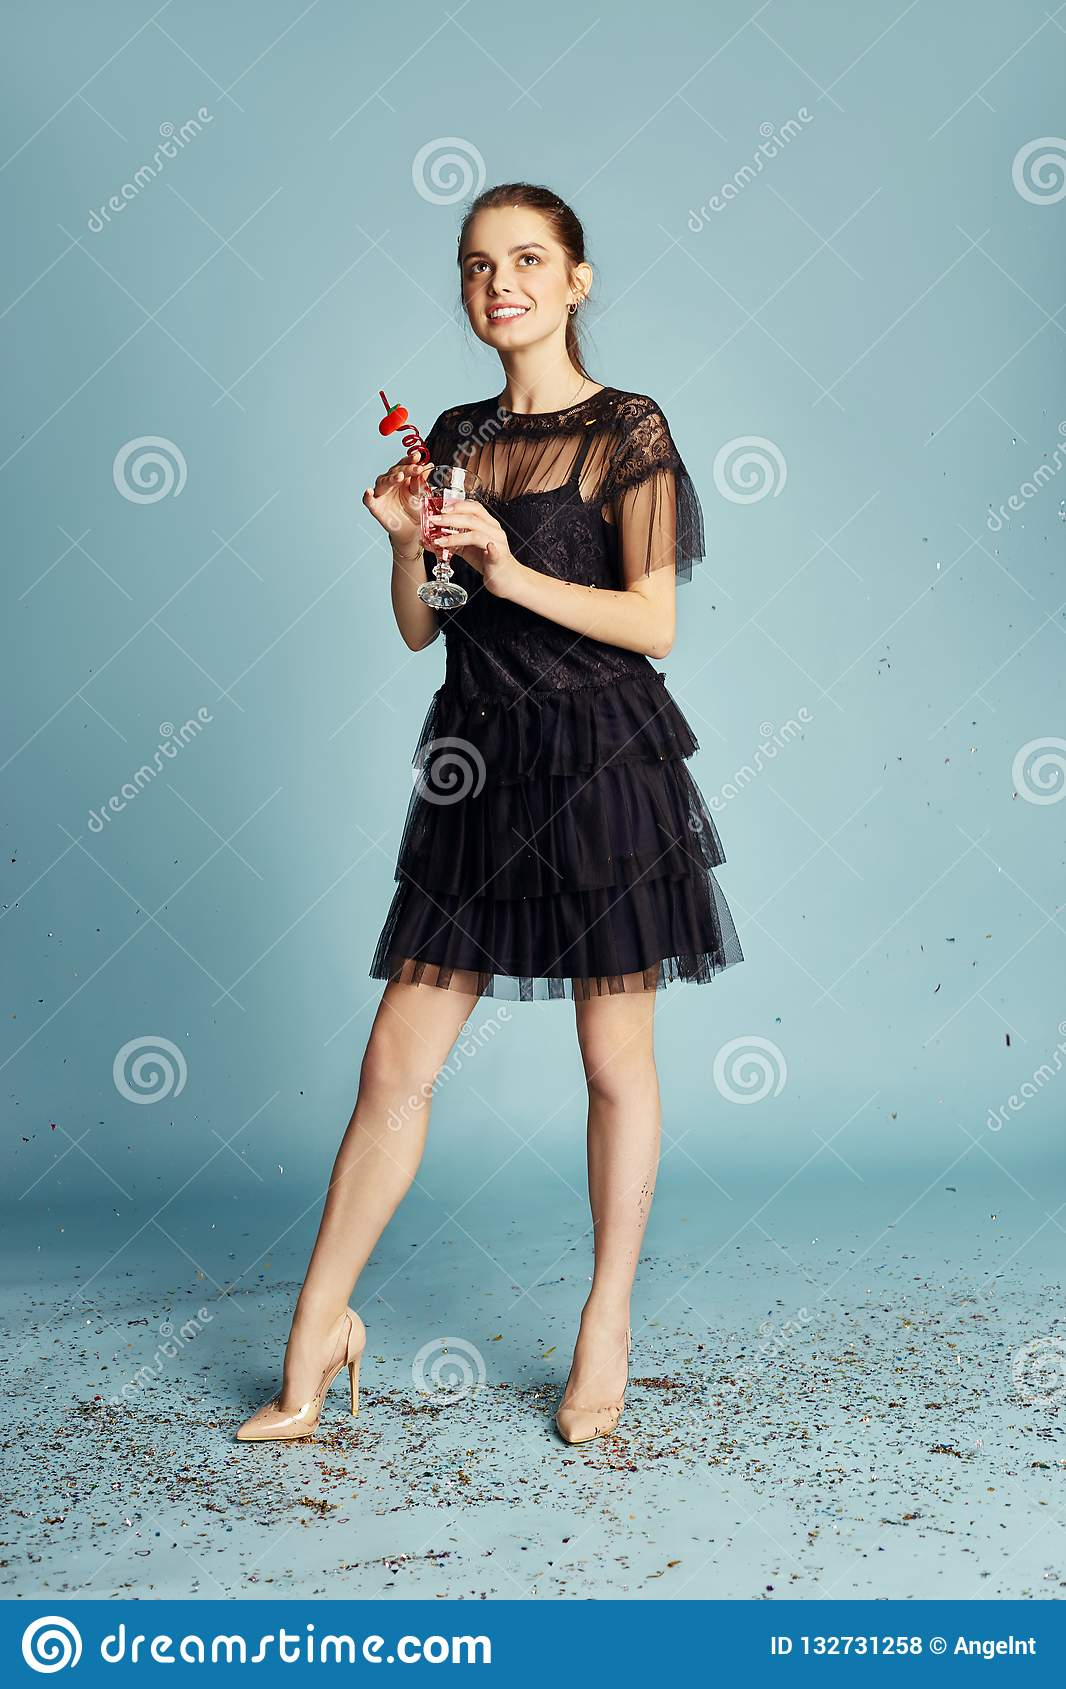 Beautiful Woman celebrating a birthday party having fun laughing and eating cakes under flying confetti. Girl posing and smiling